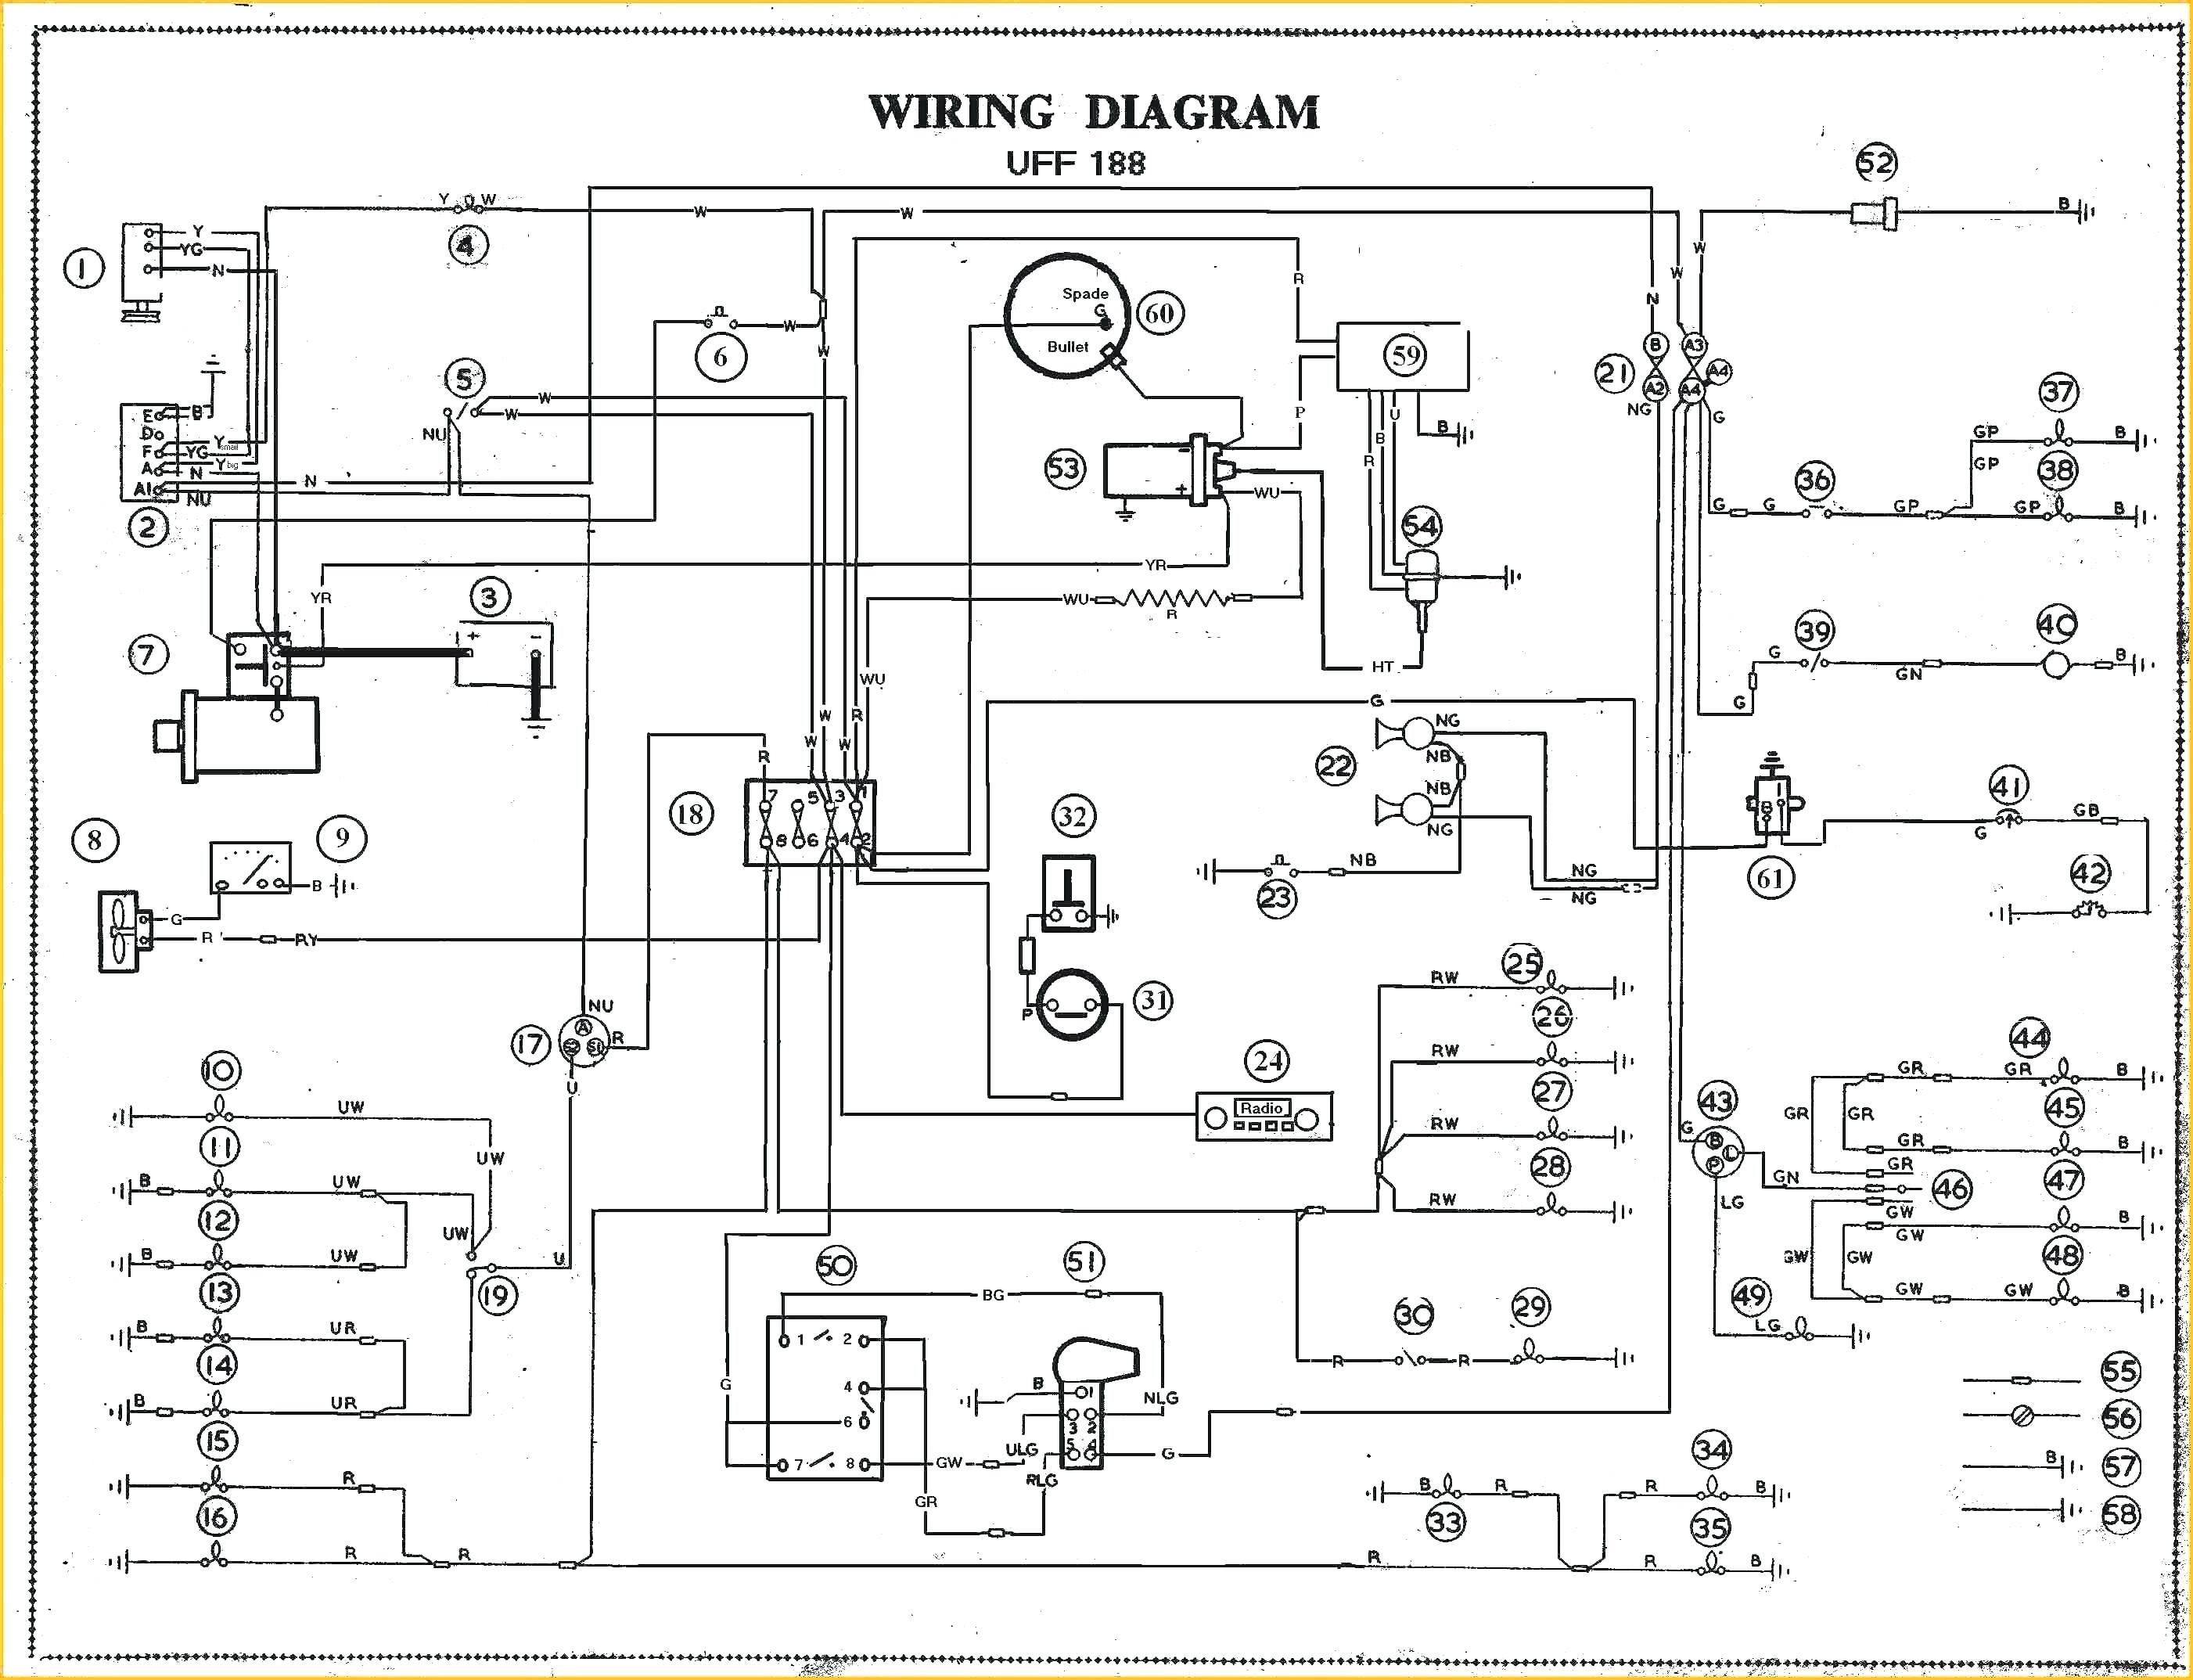 [SCHEMATICS_49CH]  4400 International Truck Wiring Diagrams | schematic and wiring diagram in  2020 | Electrical diagram, Electrical wiring diagram, Trailer wiring diagram | International Trucks Wiring Diagrams |  | Pinterest